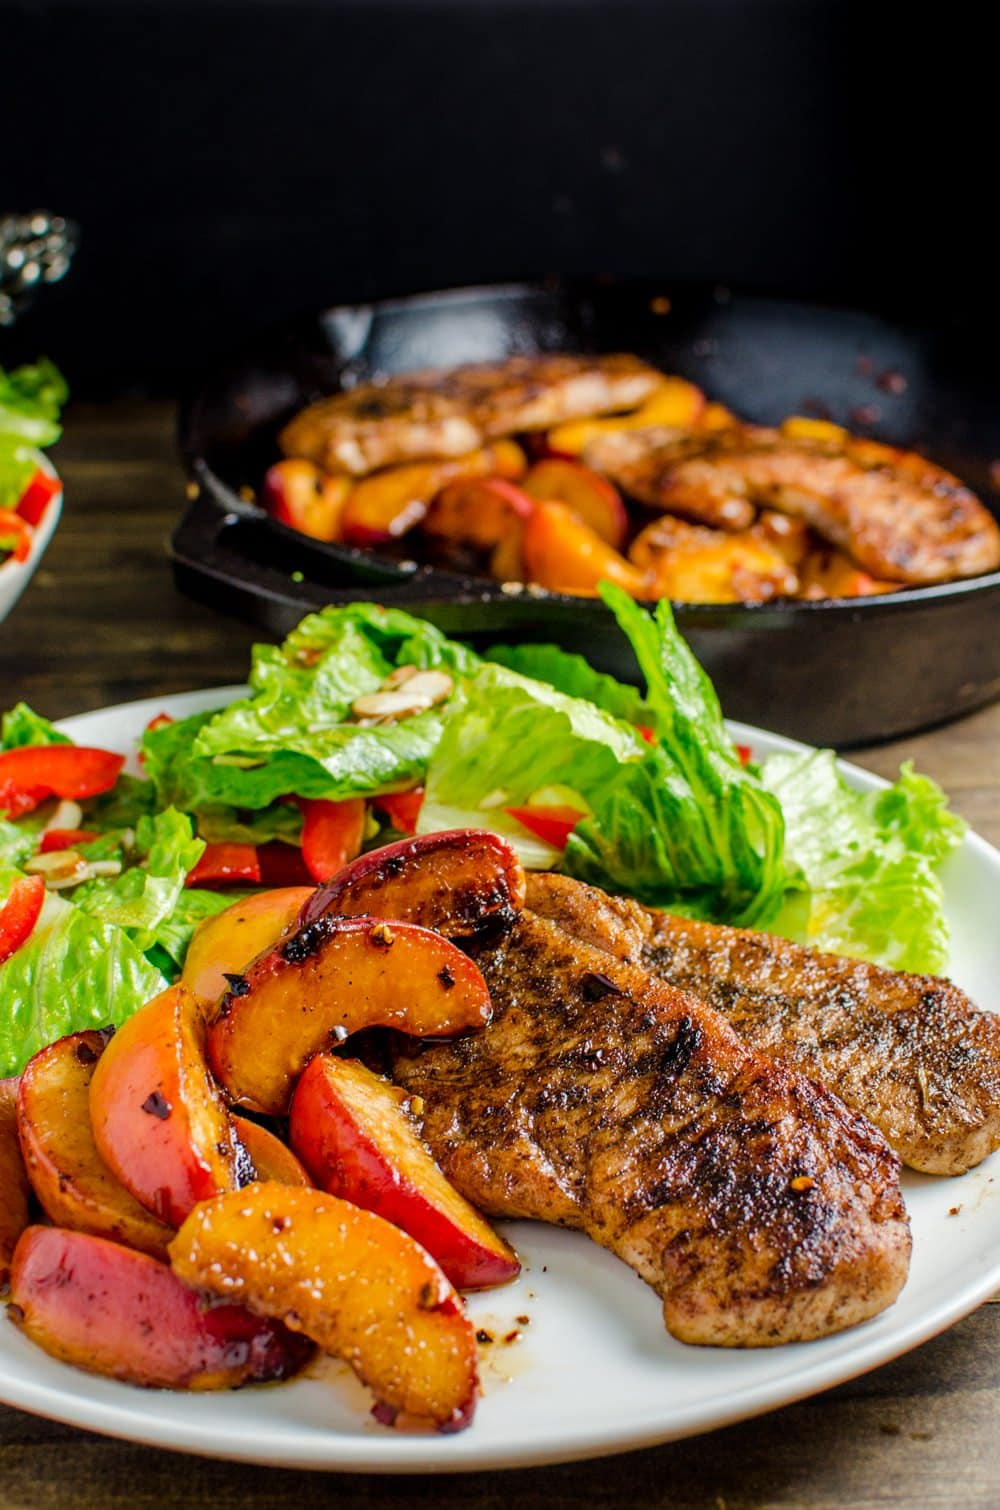 Pan Fried Five Spice Pork And Peaches  Here's Your Answer To An Infinitely  Flavourful Yet